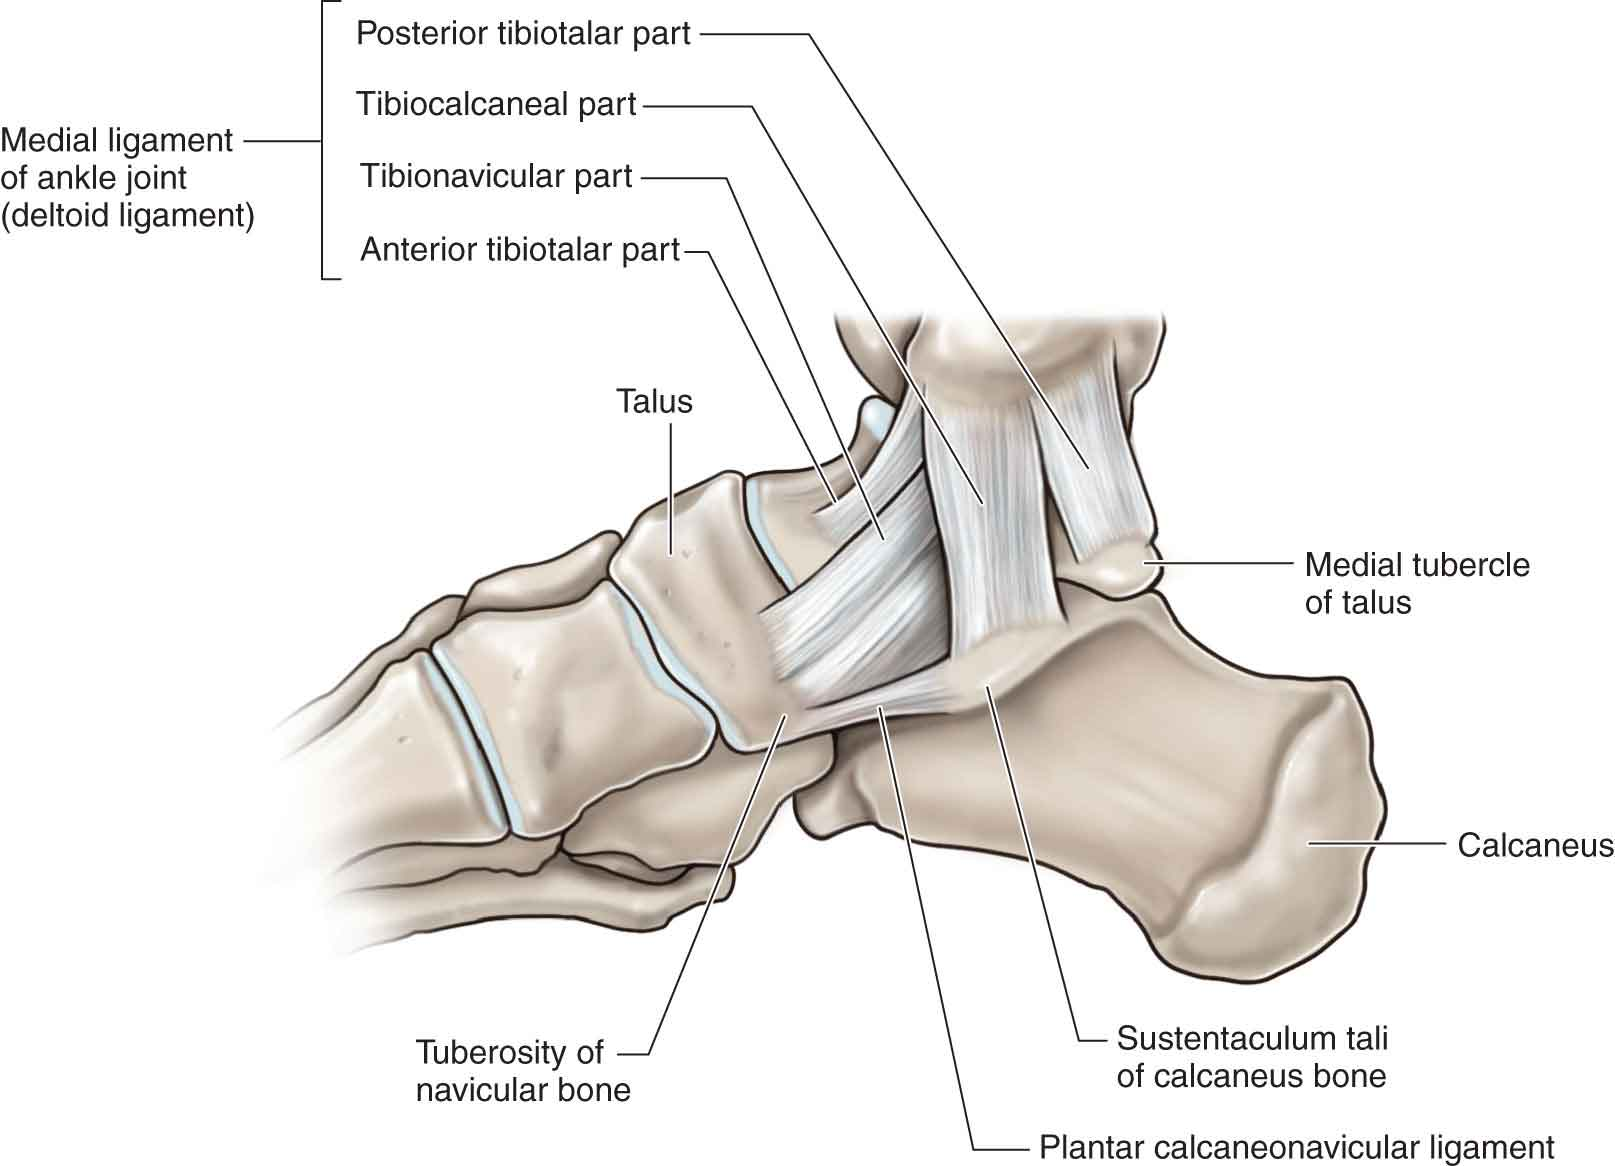 lower leg, ankle, and foot | musculoskeletal key, Human Body